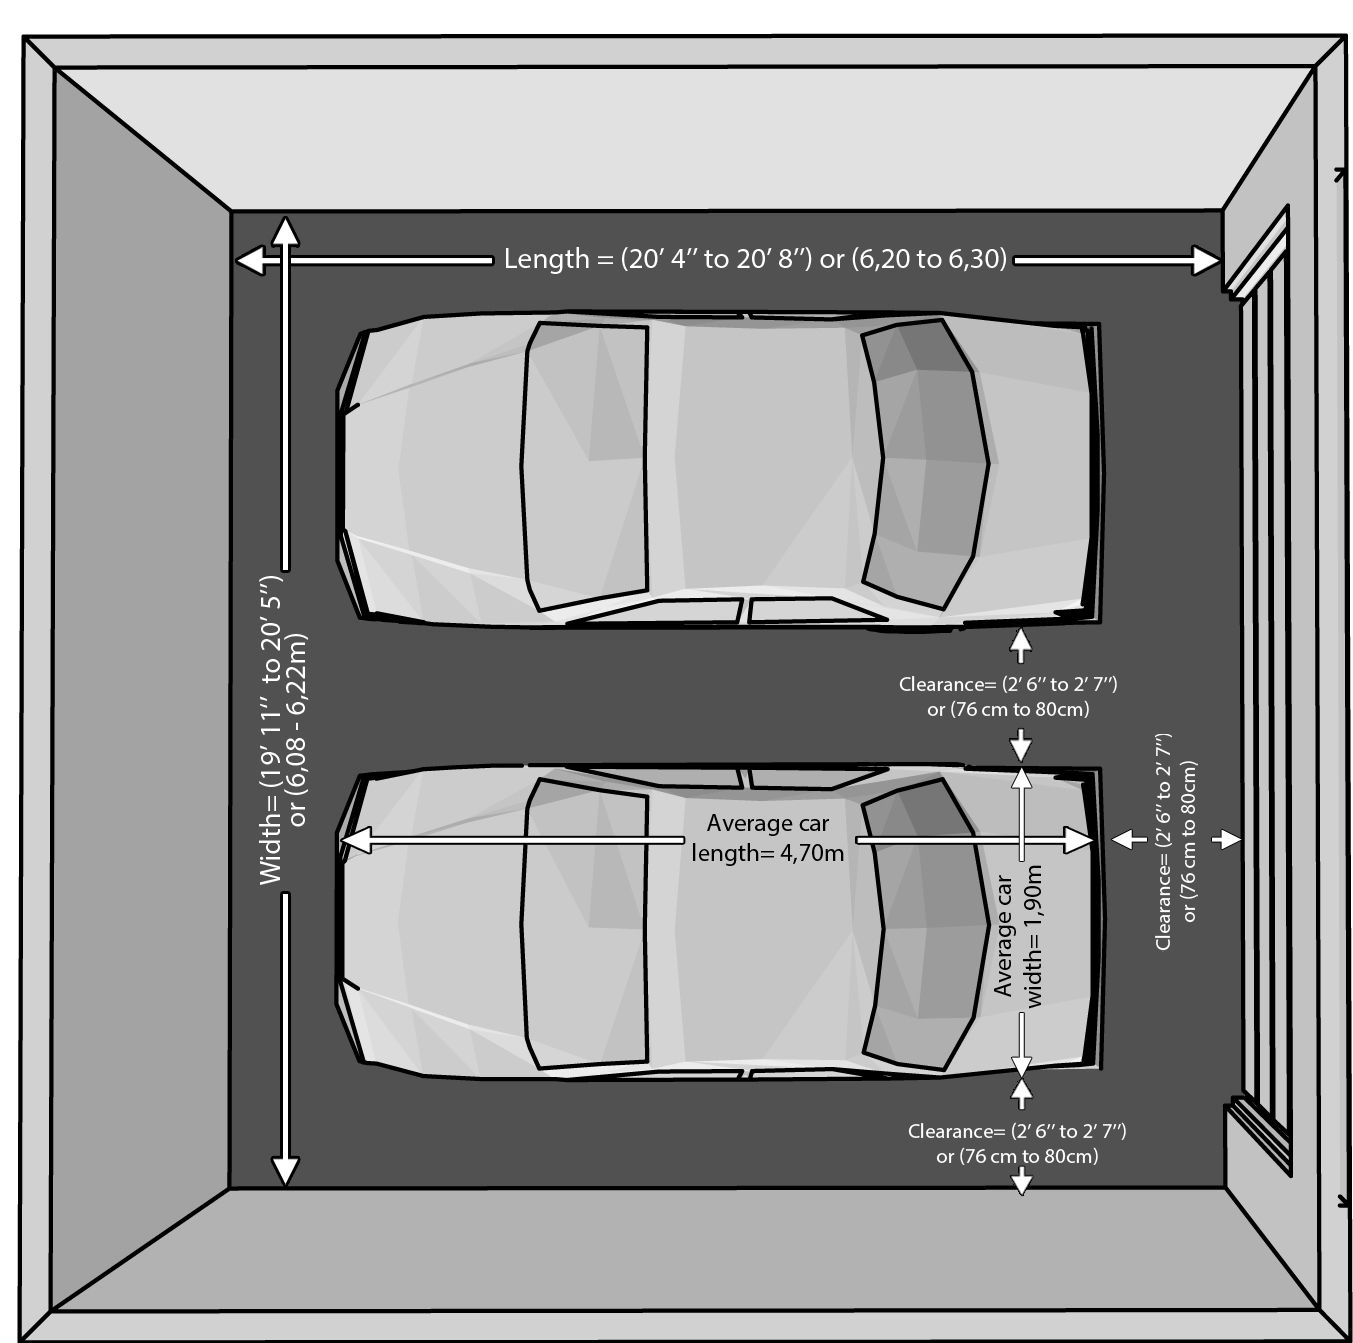 Garage Cars Garage Measurements Cars Garaze Size Contemporary Floor Plan  Steven Corley Randel Architect   Garage Size Cars Garage Dimensions Cars  Garage. garage dimension minimum   Recherche Google   inspiration projet